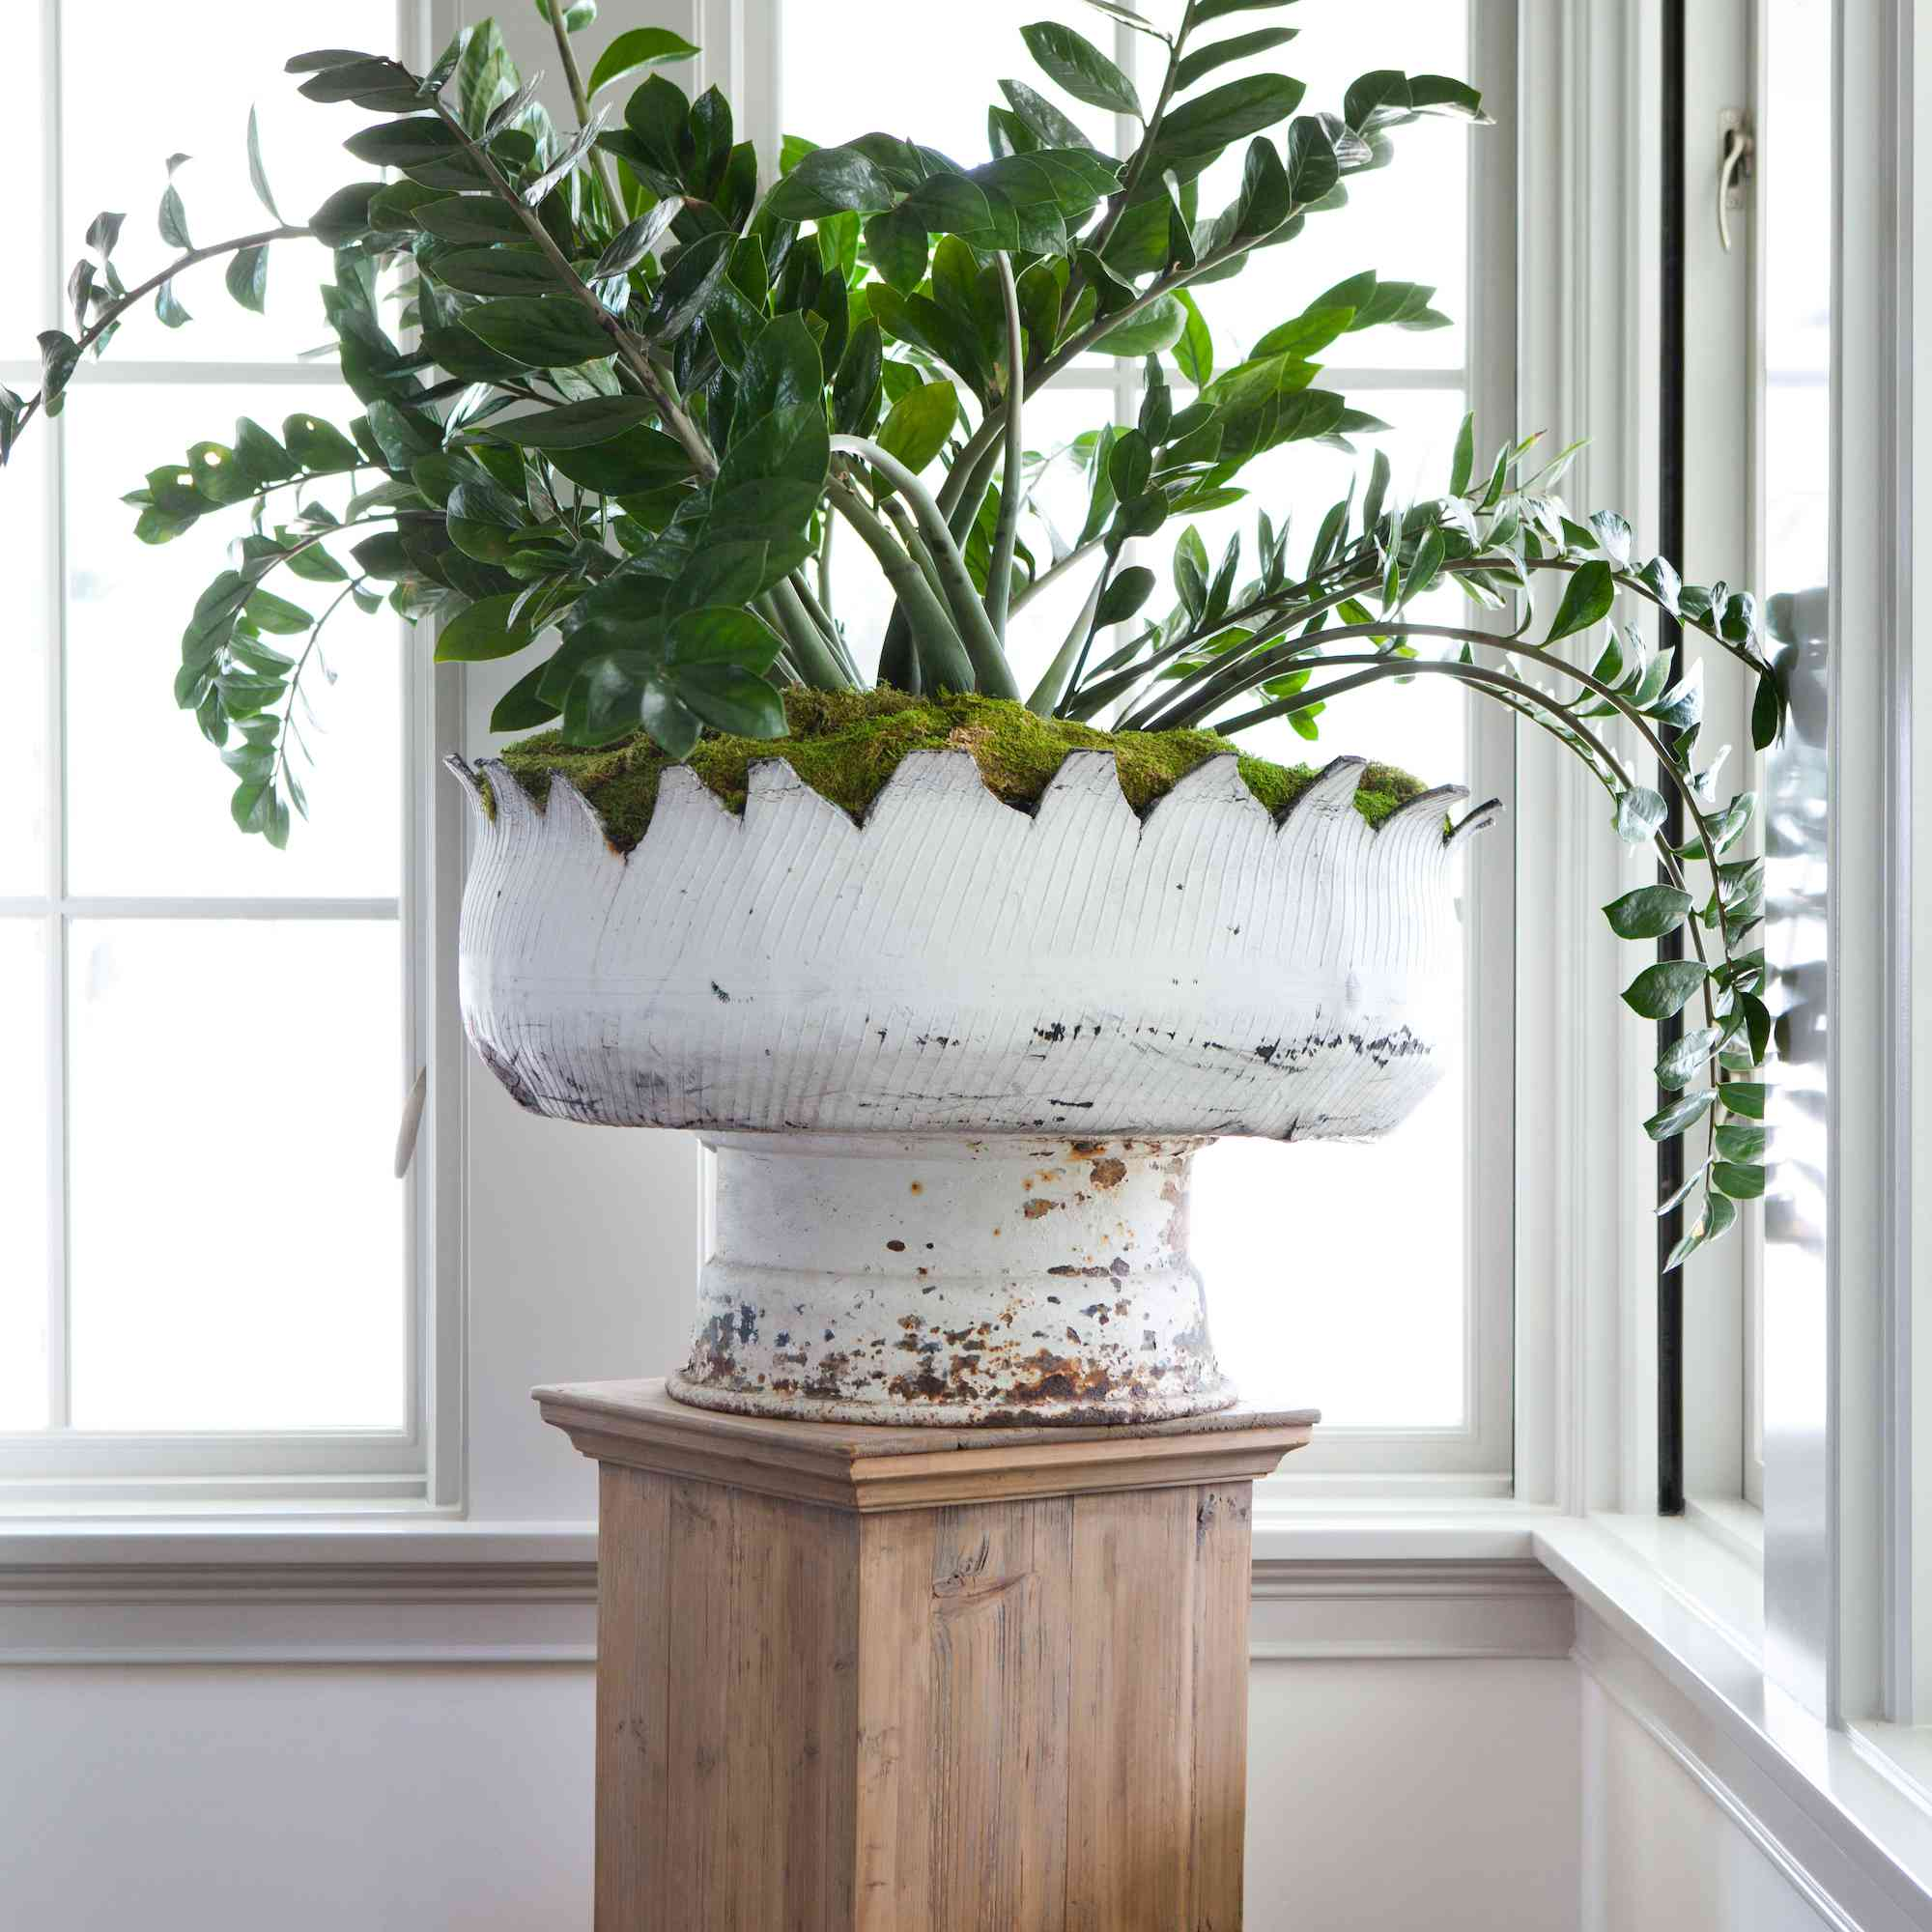 ZZ Plant in large planter.